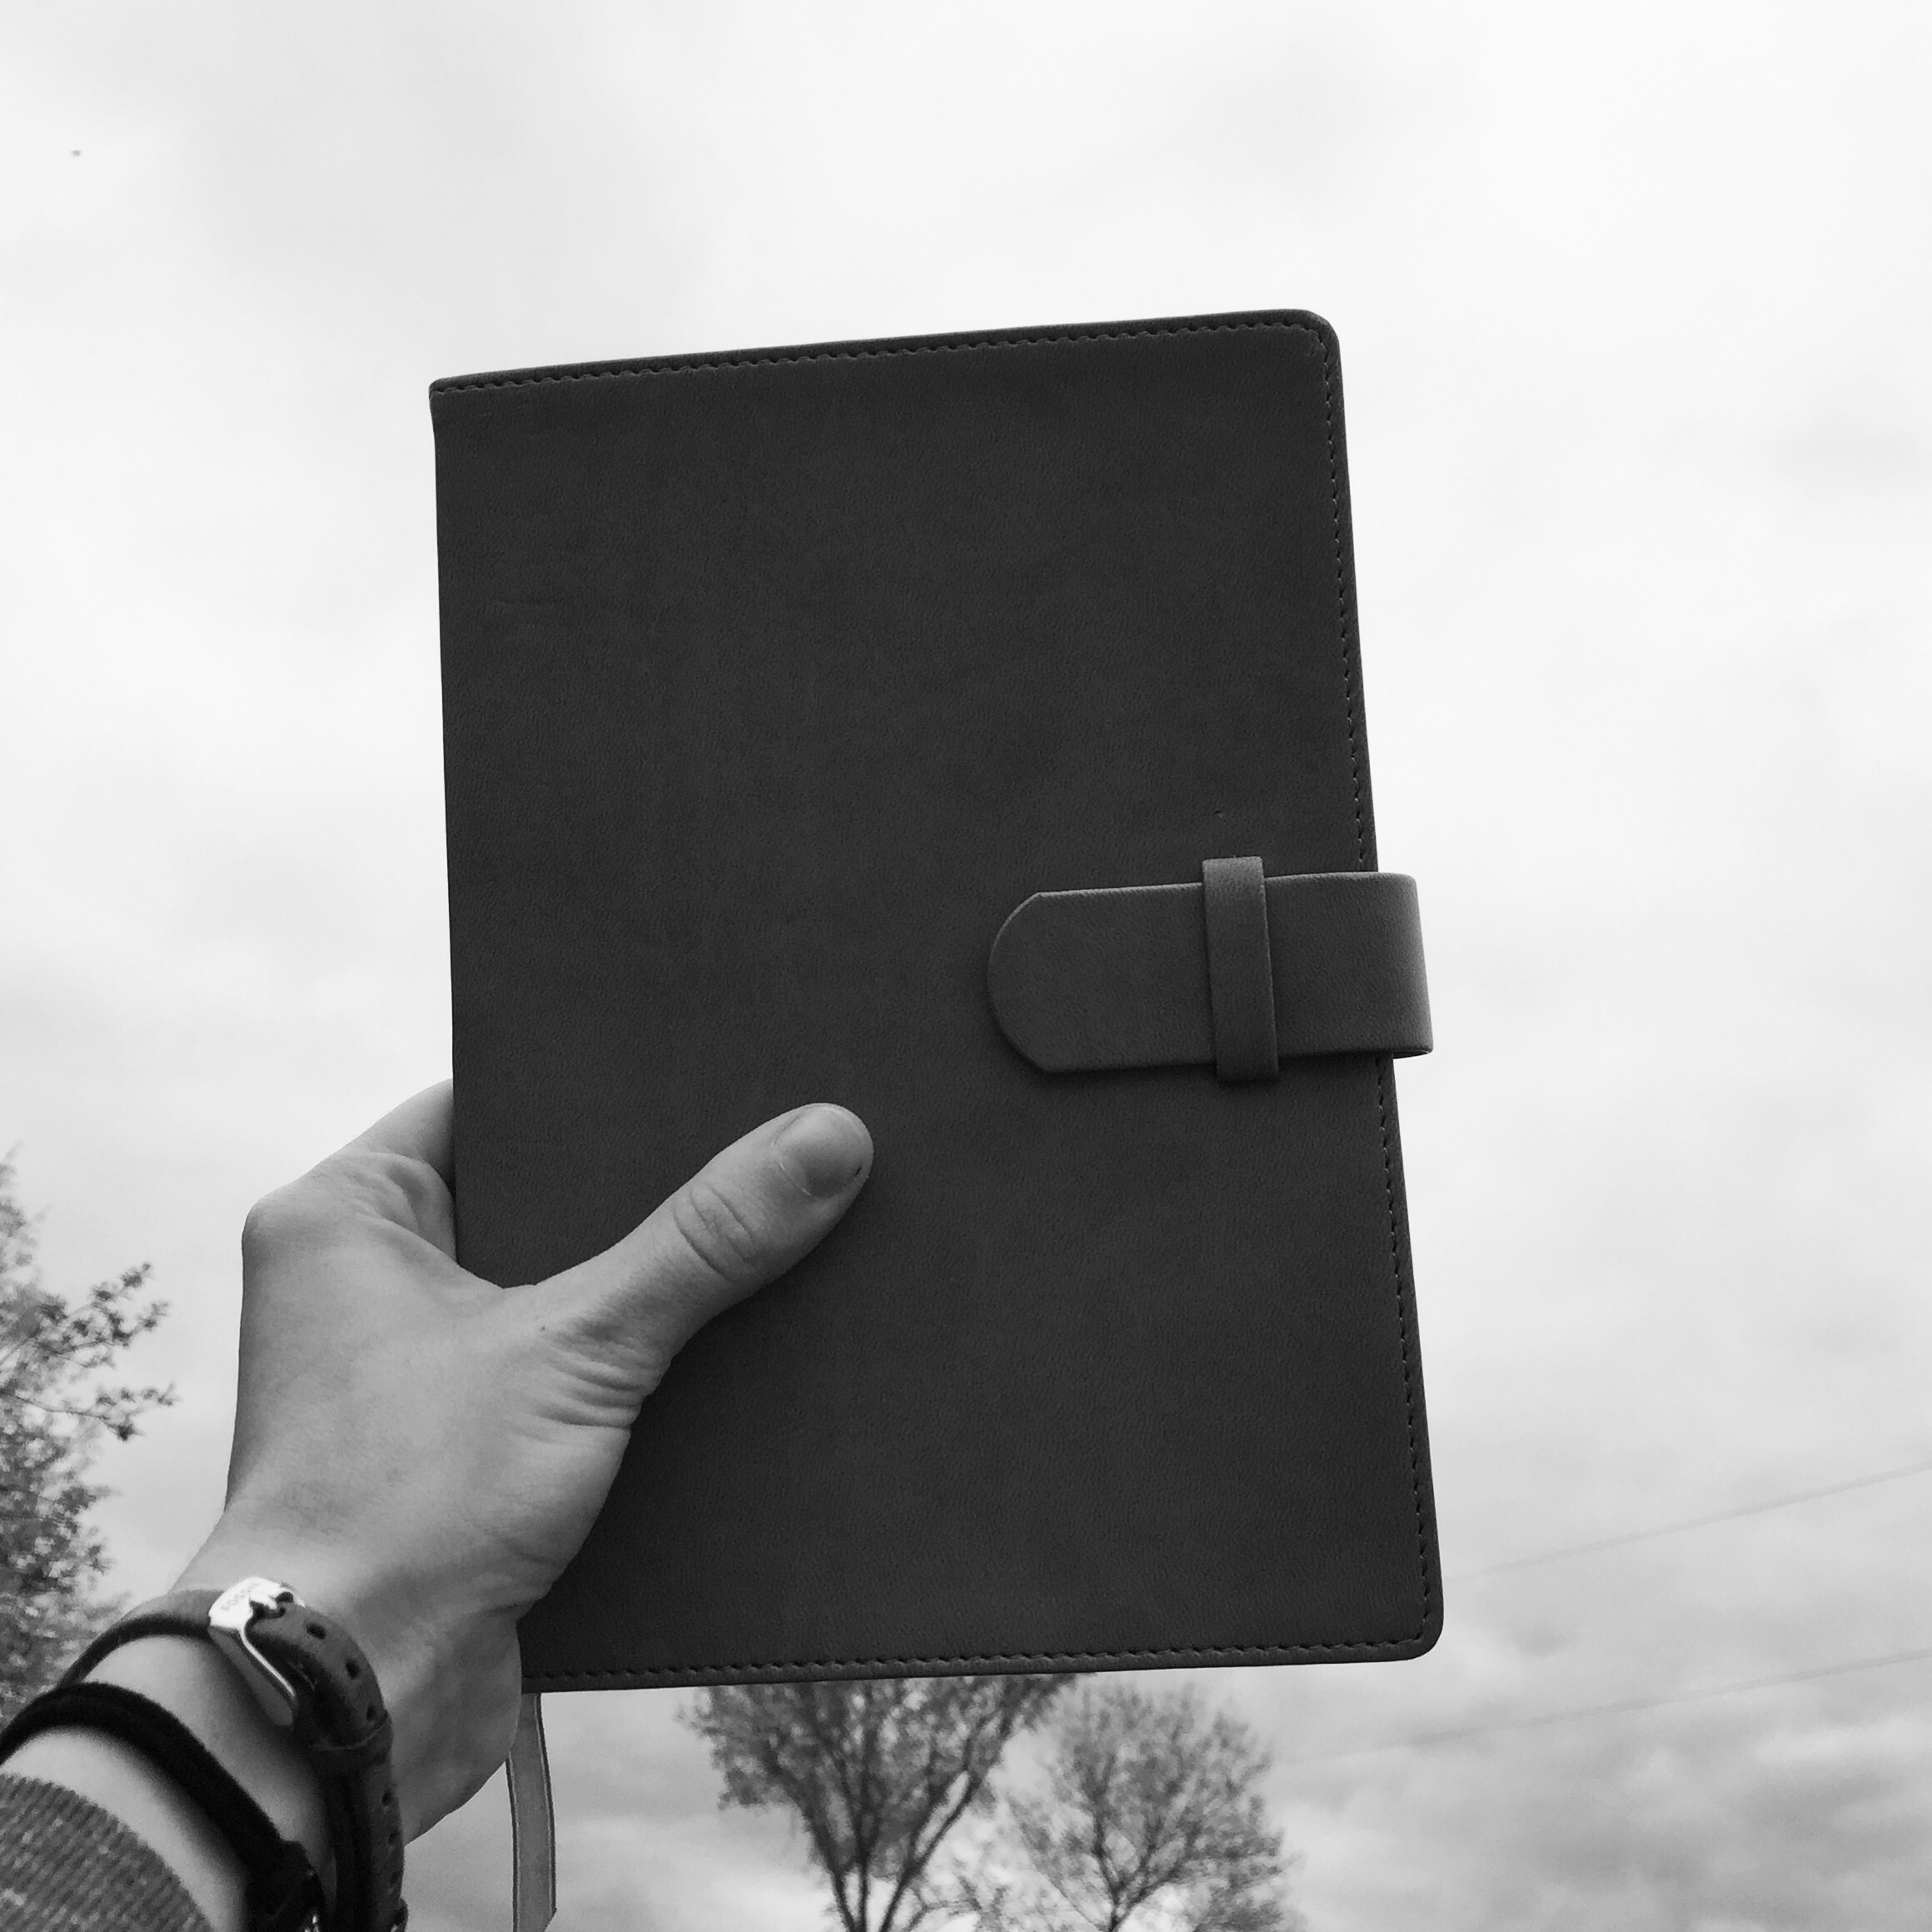 Journal number 27 waiting to be filled with new adventures.